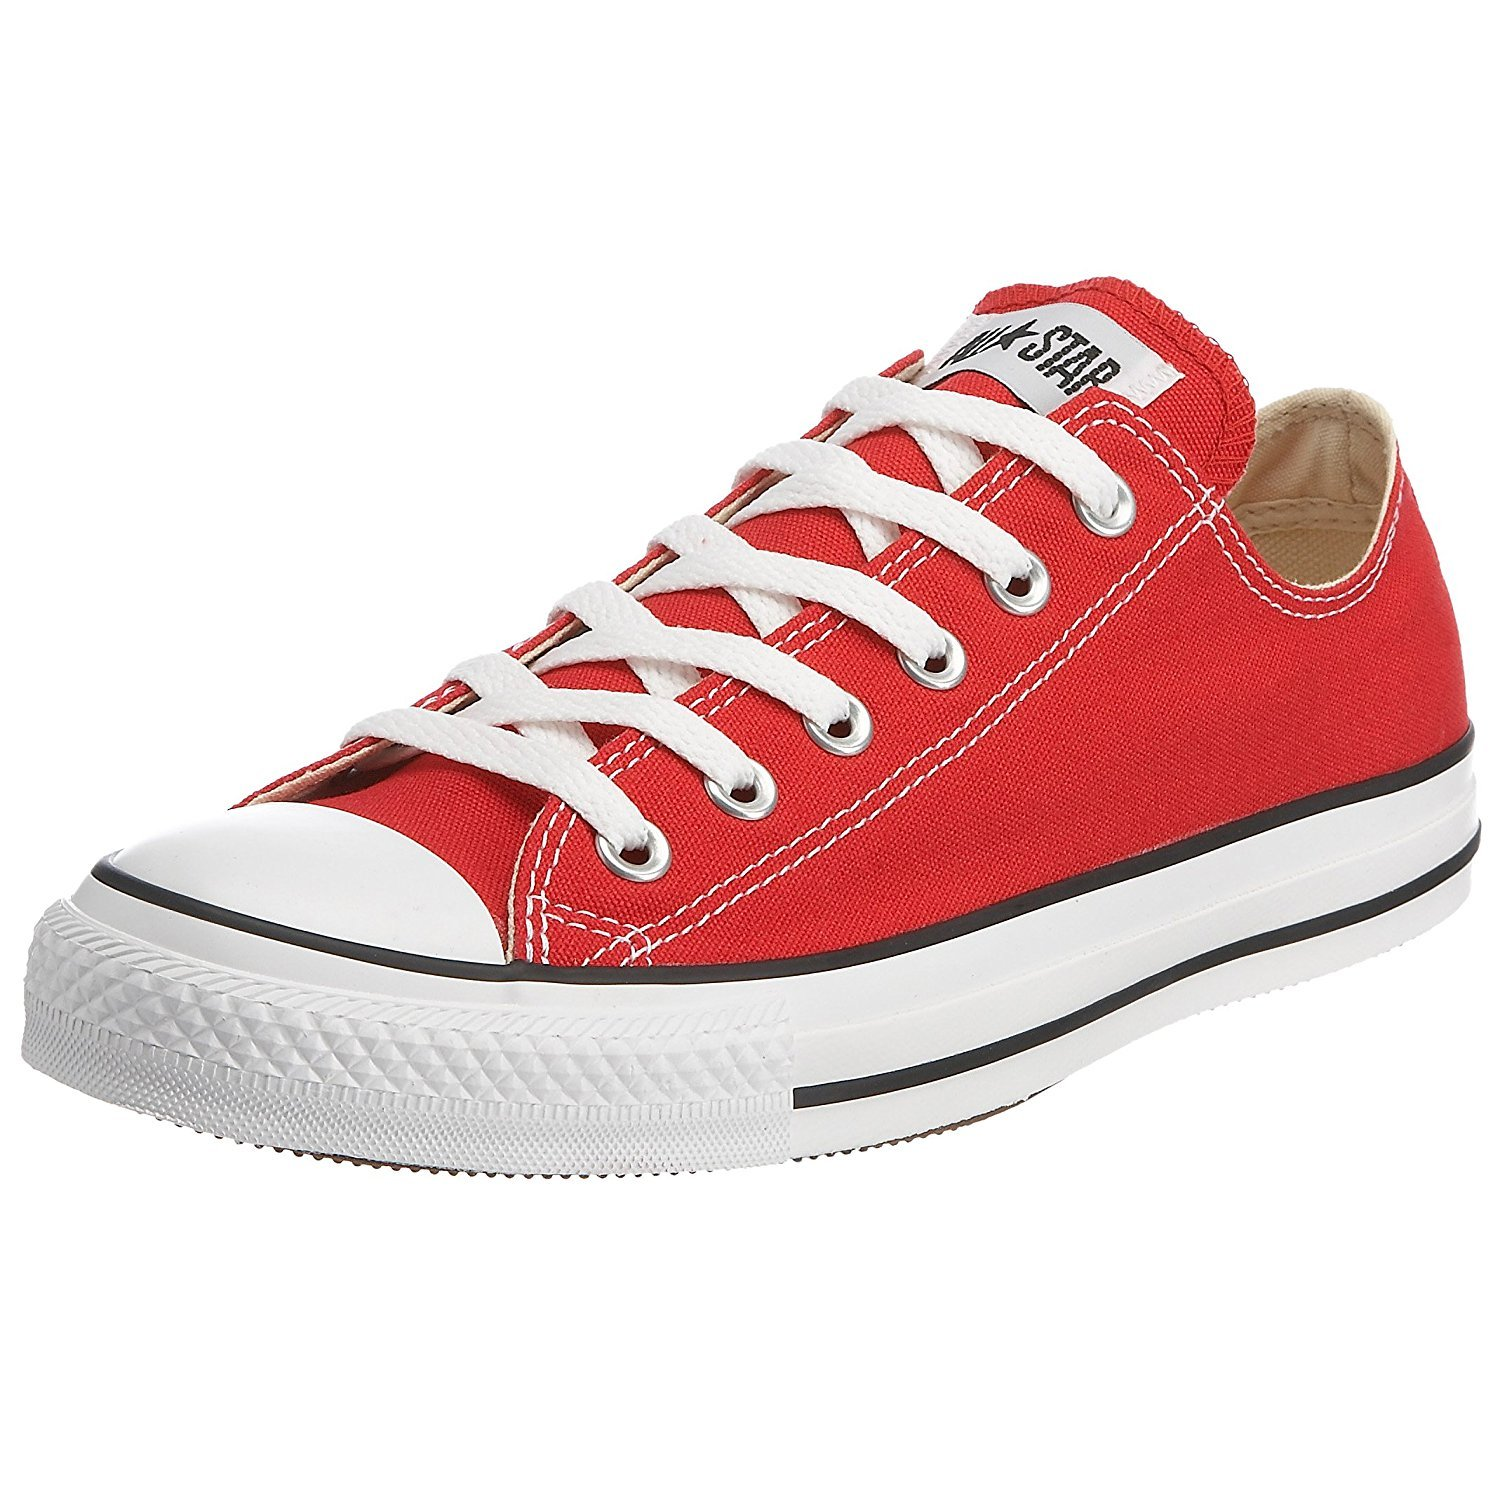 Converse All Star Low Top Barn / Ungdom Sko Gutter / Jenter Uh4d3v